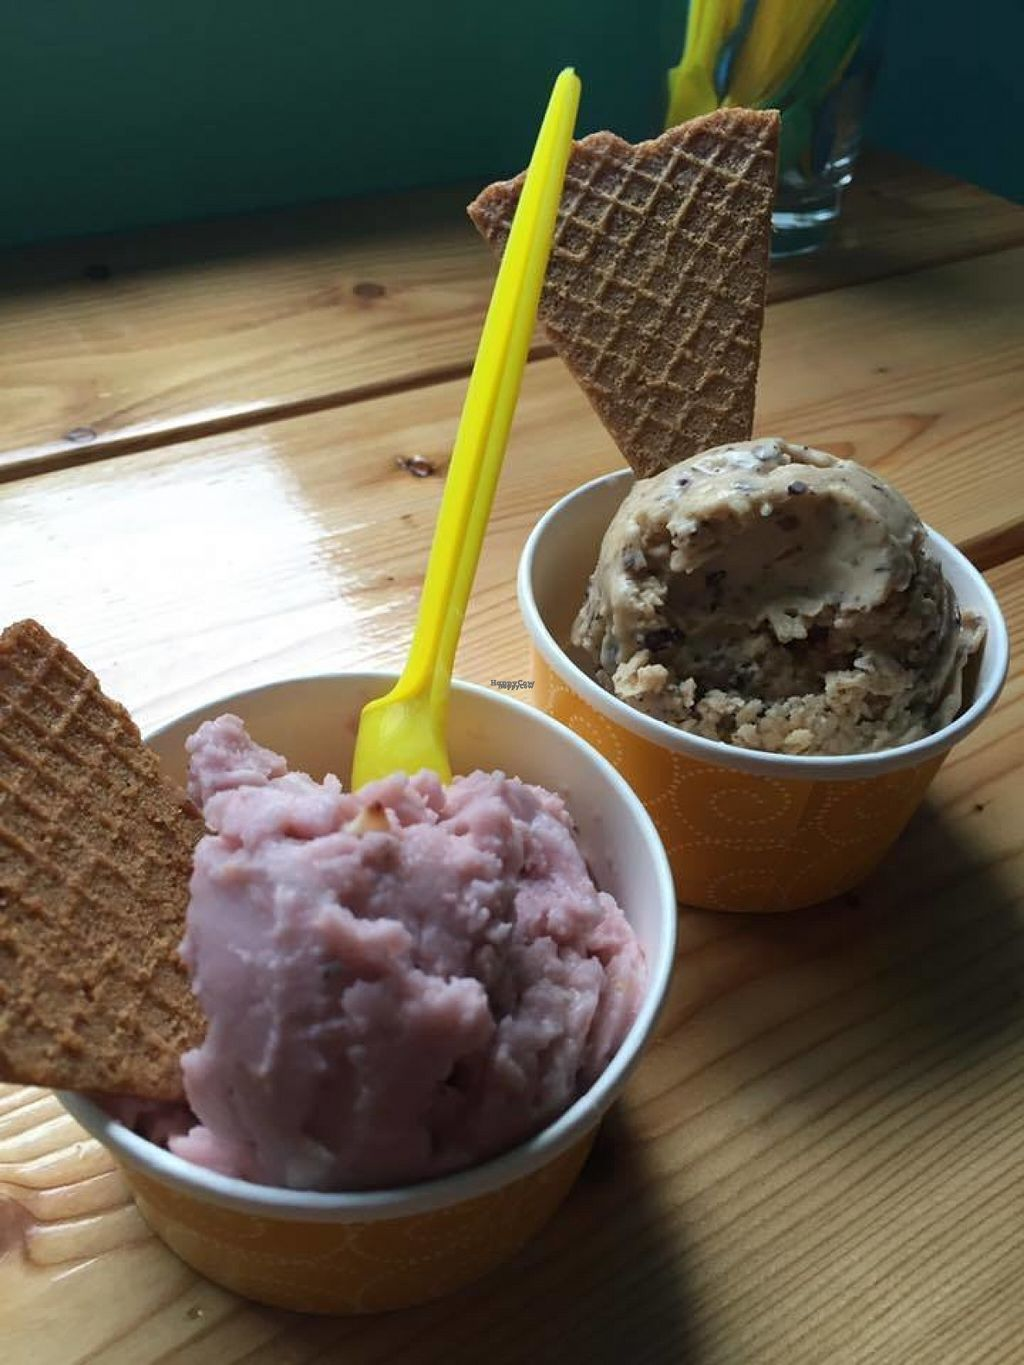 """Photo of Joylato  by <a href=""""/members/profile/JessicaMerced"""">JessicaMerced</a> <br/>Vegan ice cream  <br/> August 4, 2016  - <a href='/contact/abuse/image/67179/165410'>Report</a>"""